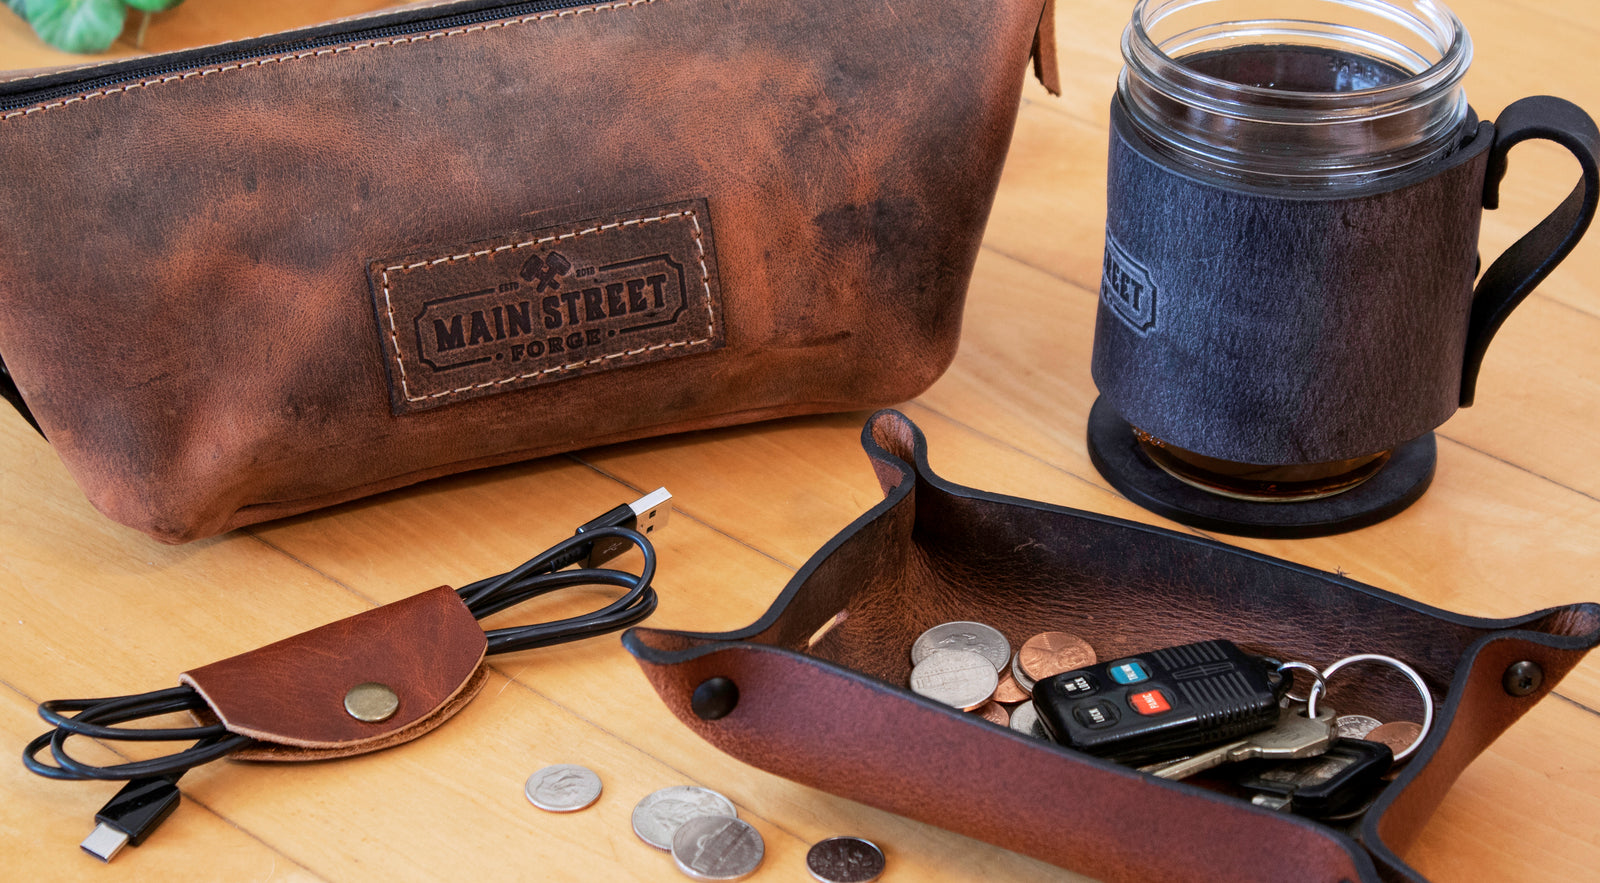 Main Street Forge Small Goods Tagged Travel Accessories